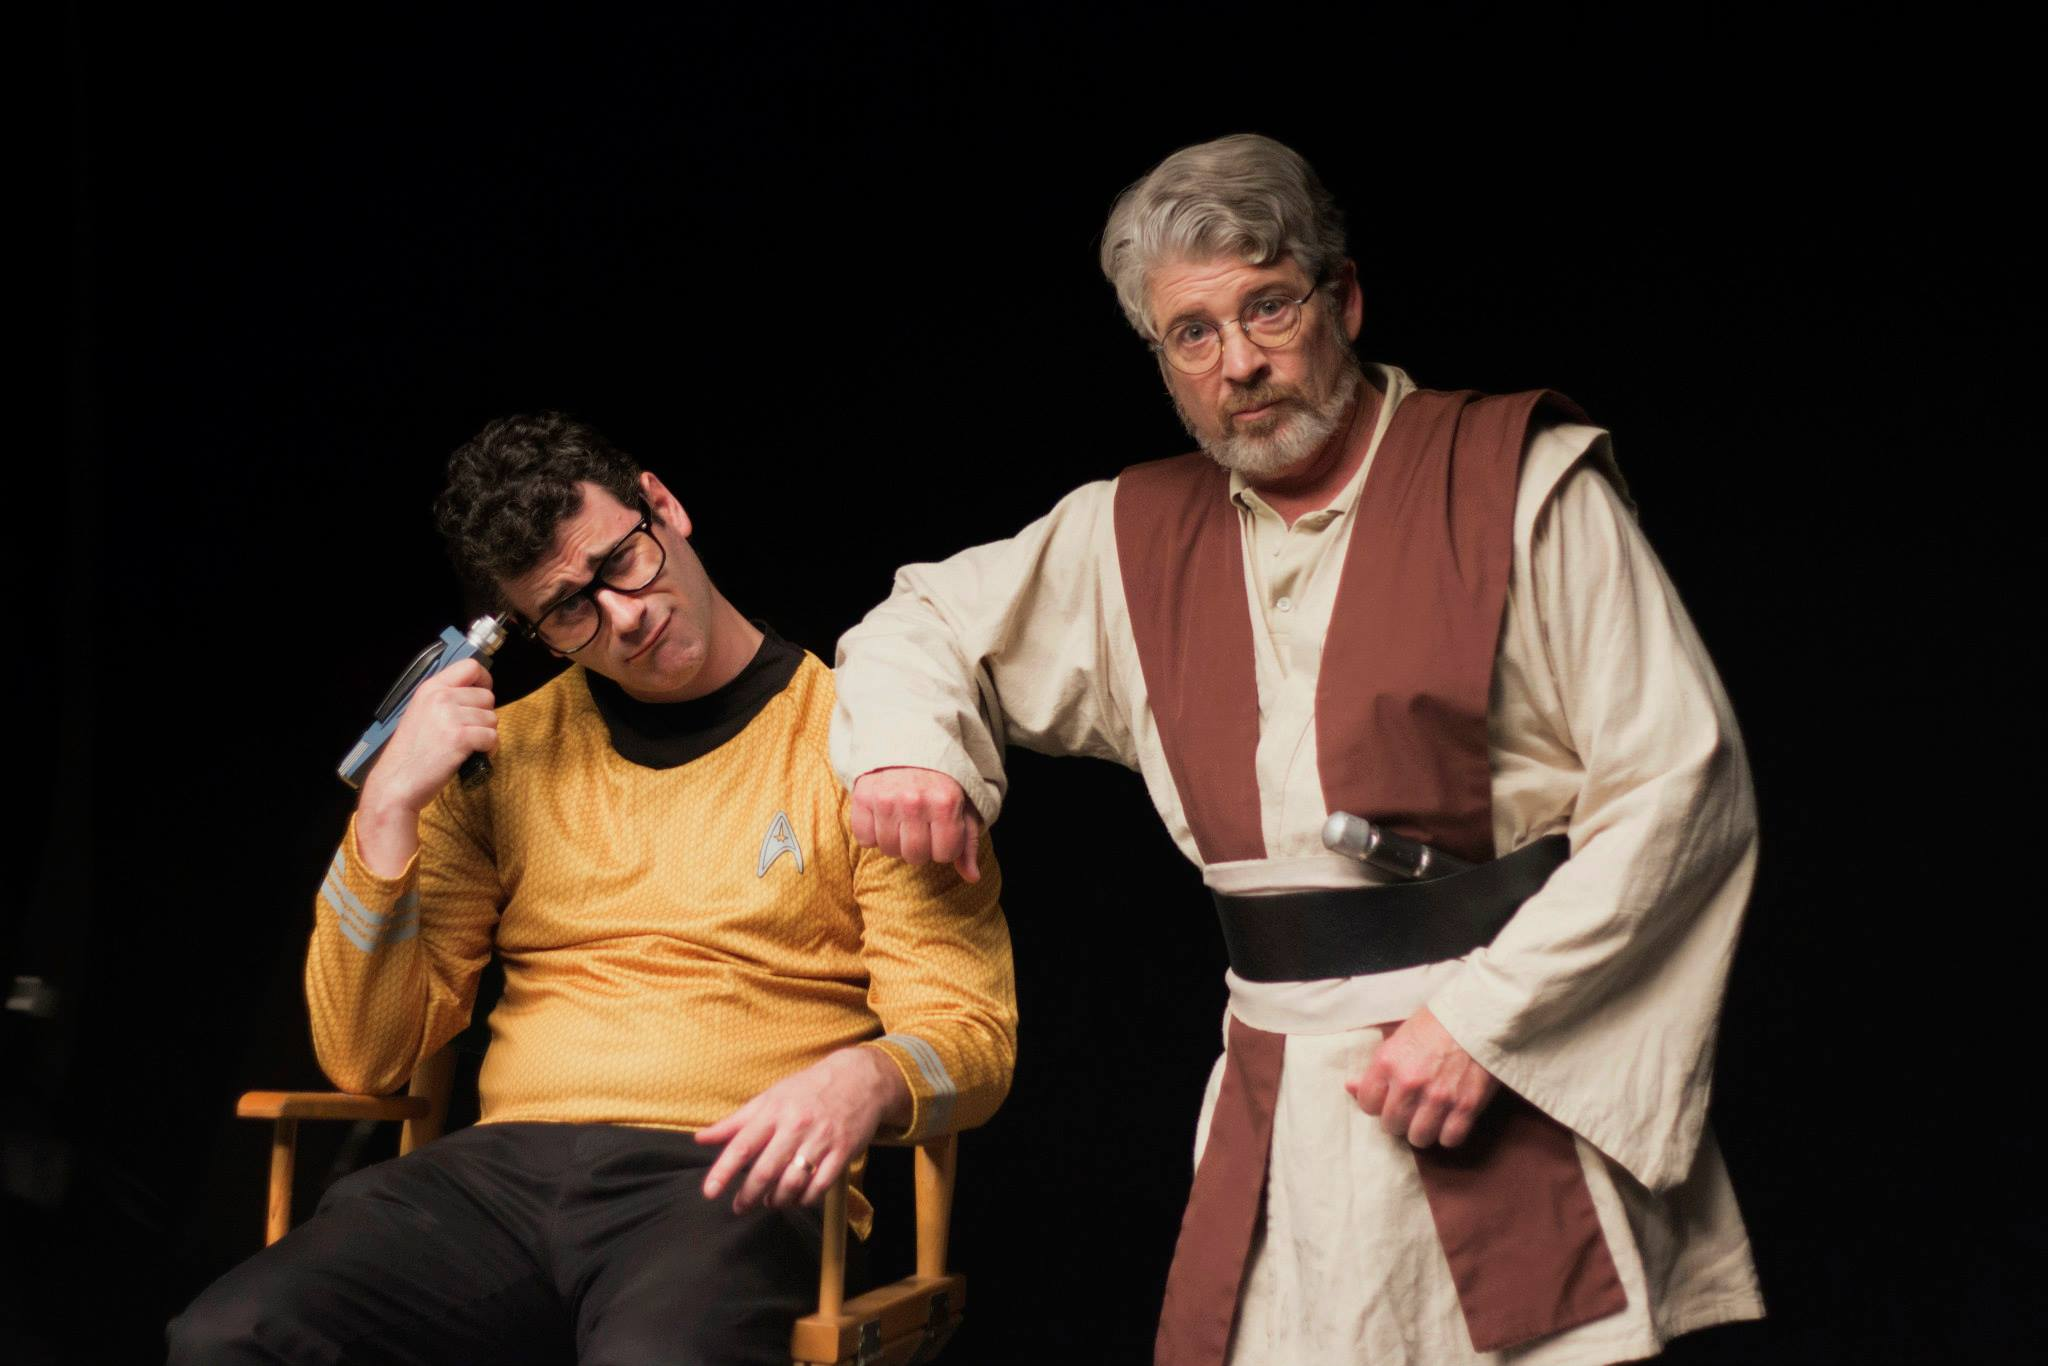 Johnny Bolton and Ronan Barbour in Star Trek Wars (2015)